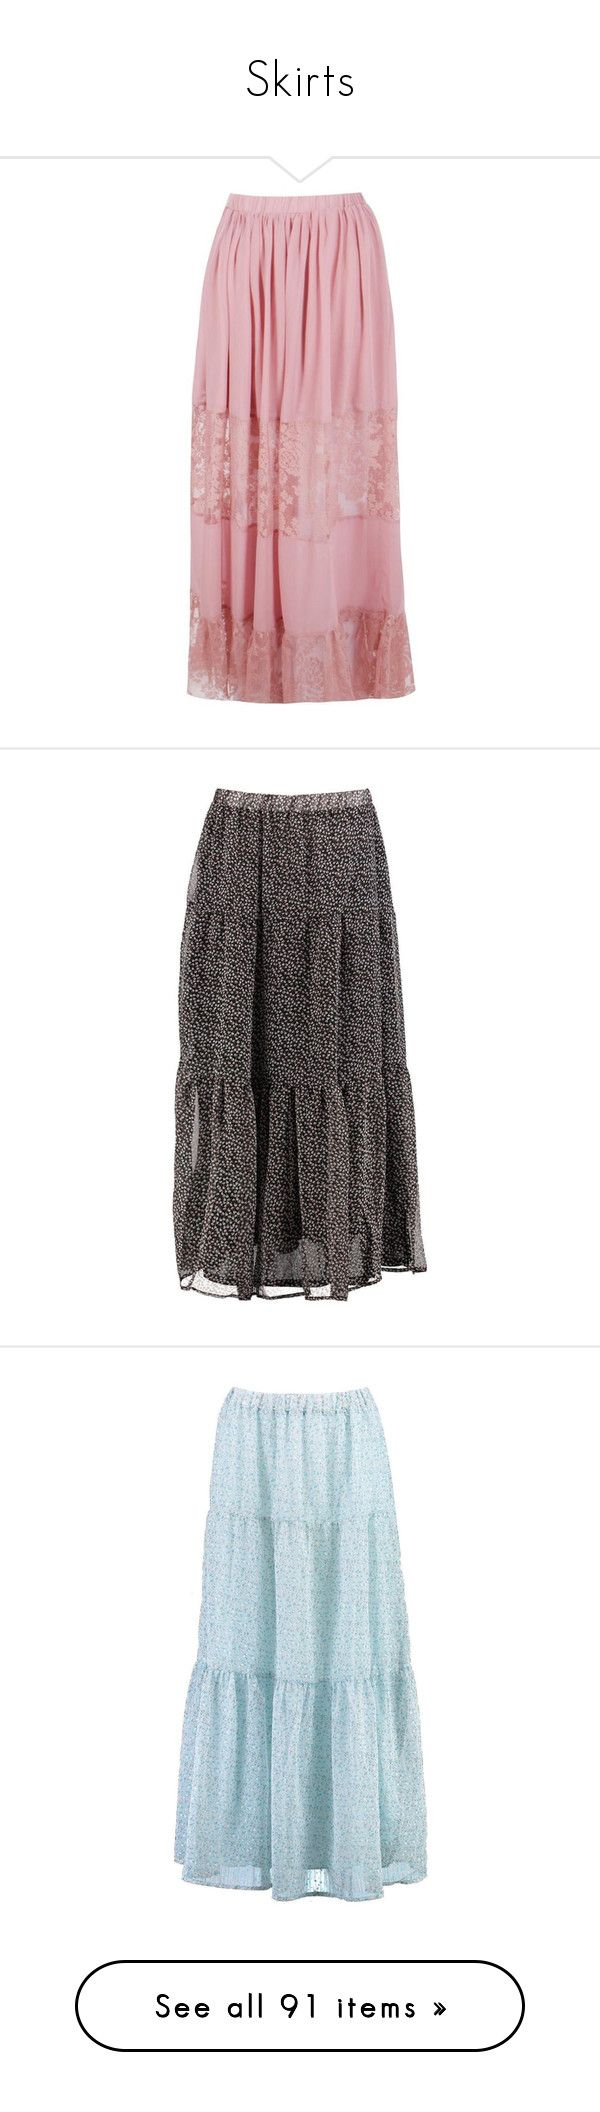 """""""Skirts"""" by lustydame ❤ liked on Polyvore featuring skirts, pleated midi skirts, long pleated maxi skirt, chiffon maxi skirt, pleated chiffon maxi skirt, long maxi skirts, midi circle skirt, long pleated skirt, circle skirt and mini skirt"""